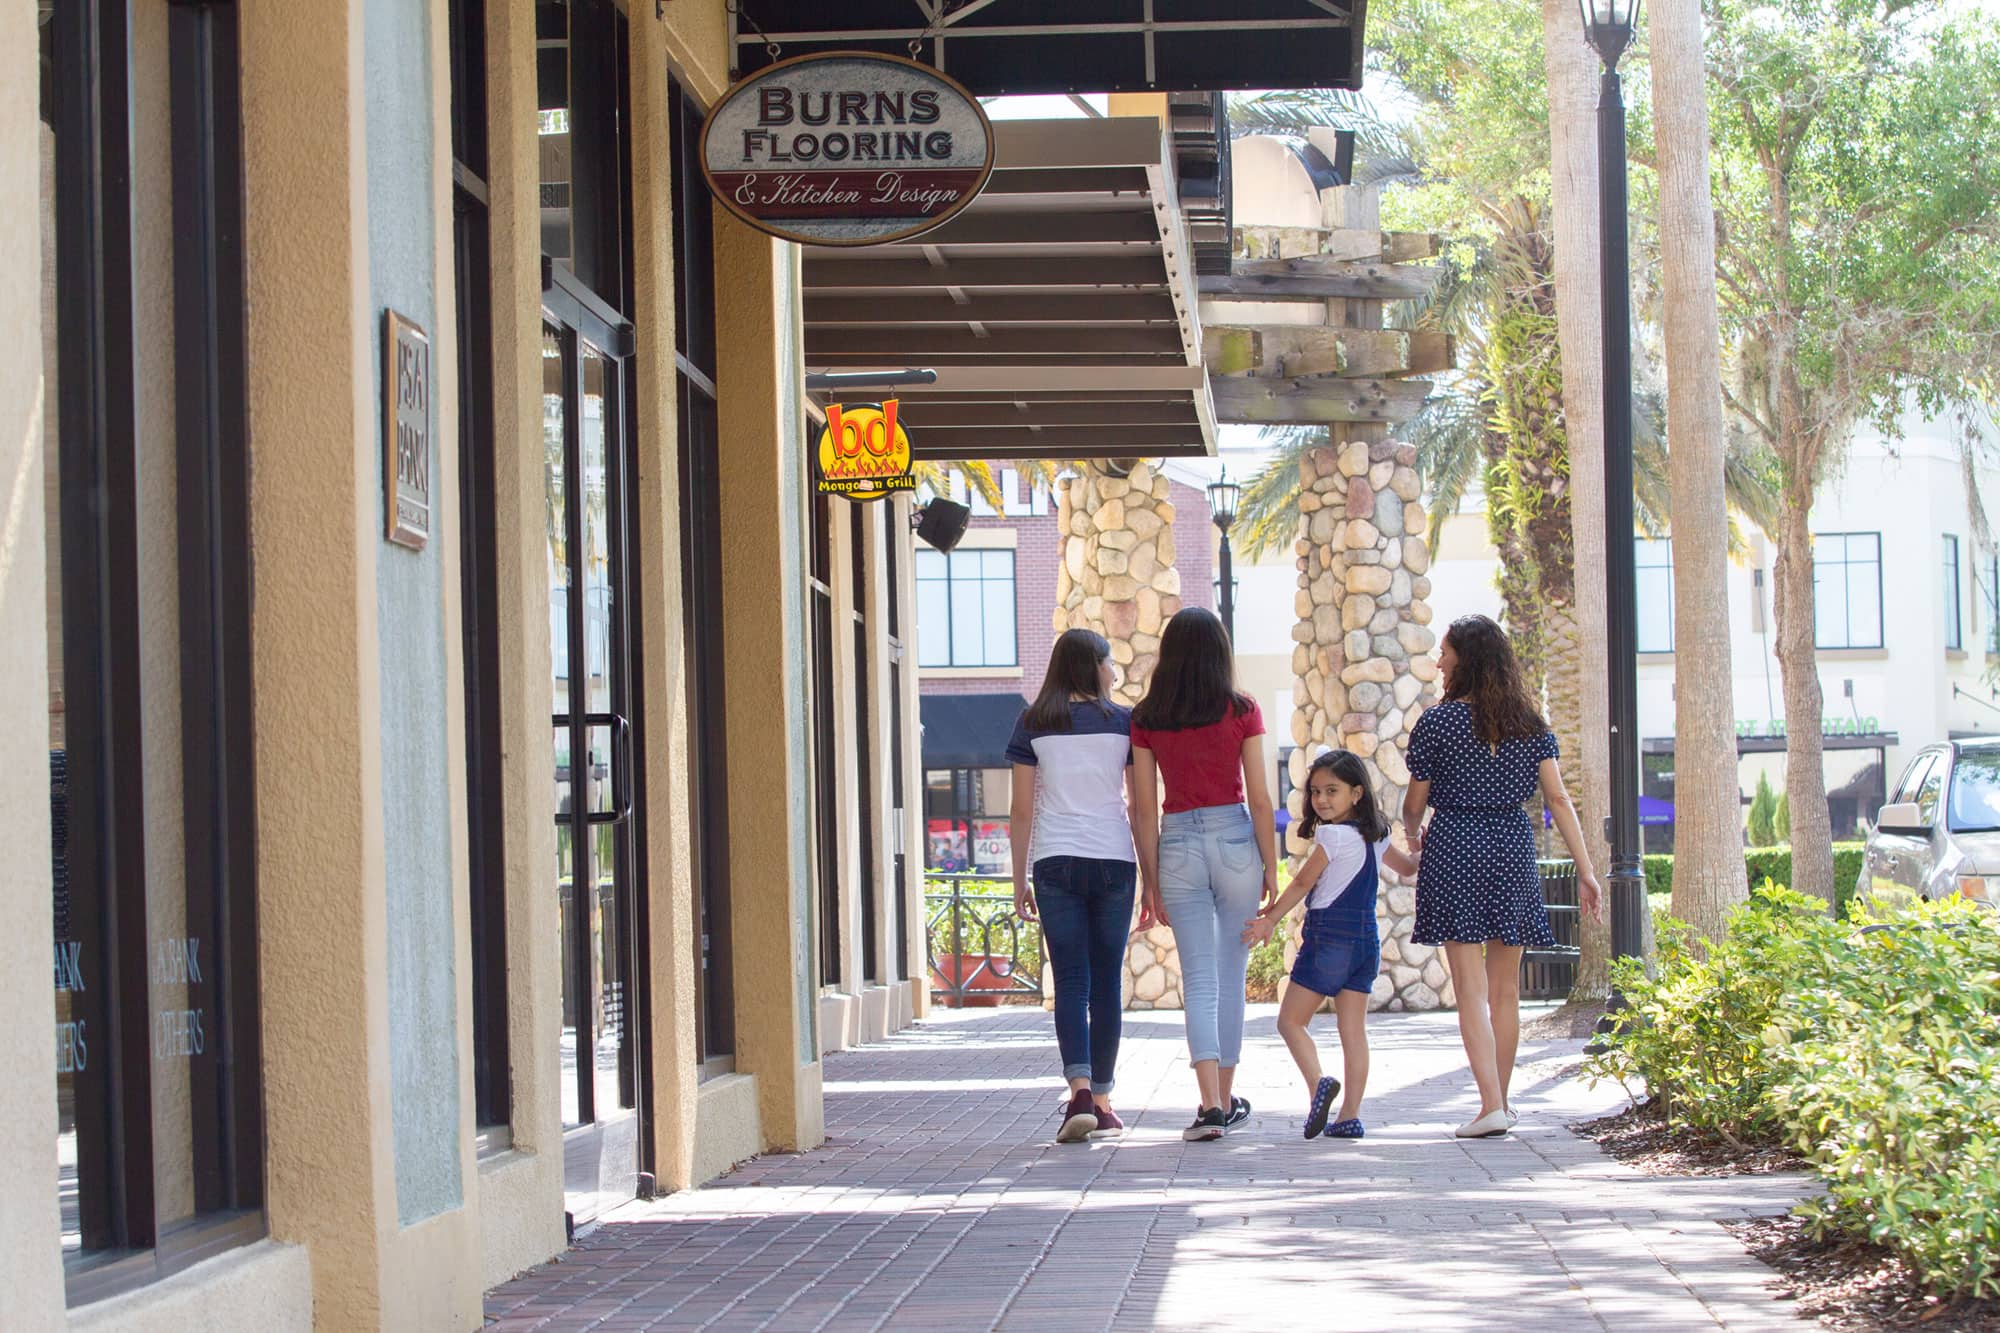 Mother and 3 daughters walking along sidewalk, in front of stores and restaurants at Lakeside Village in Lakeland.